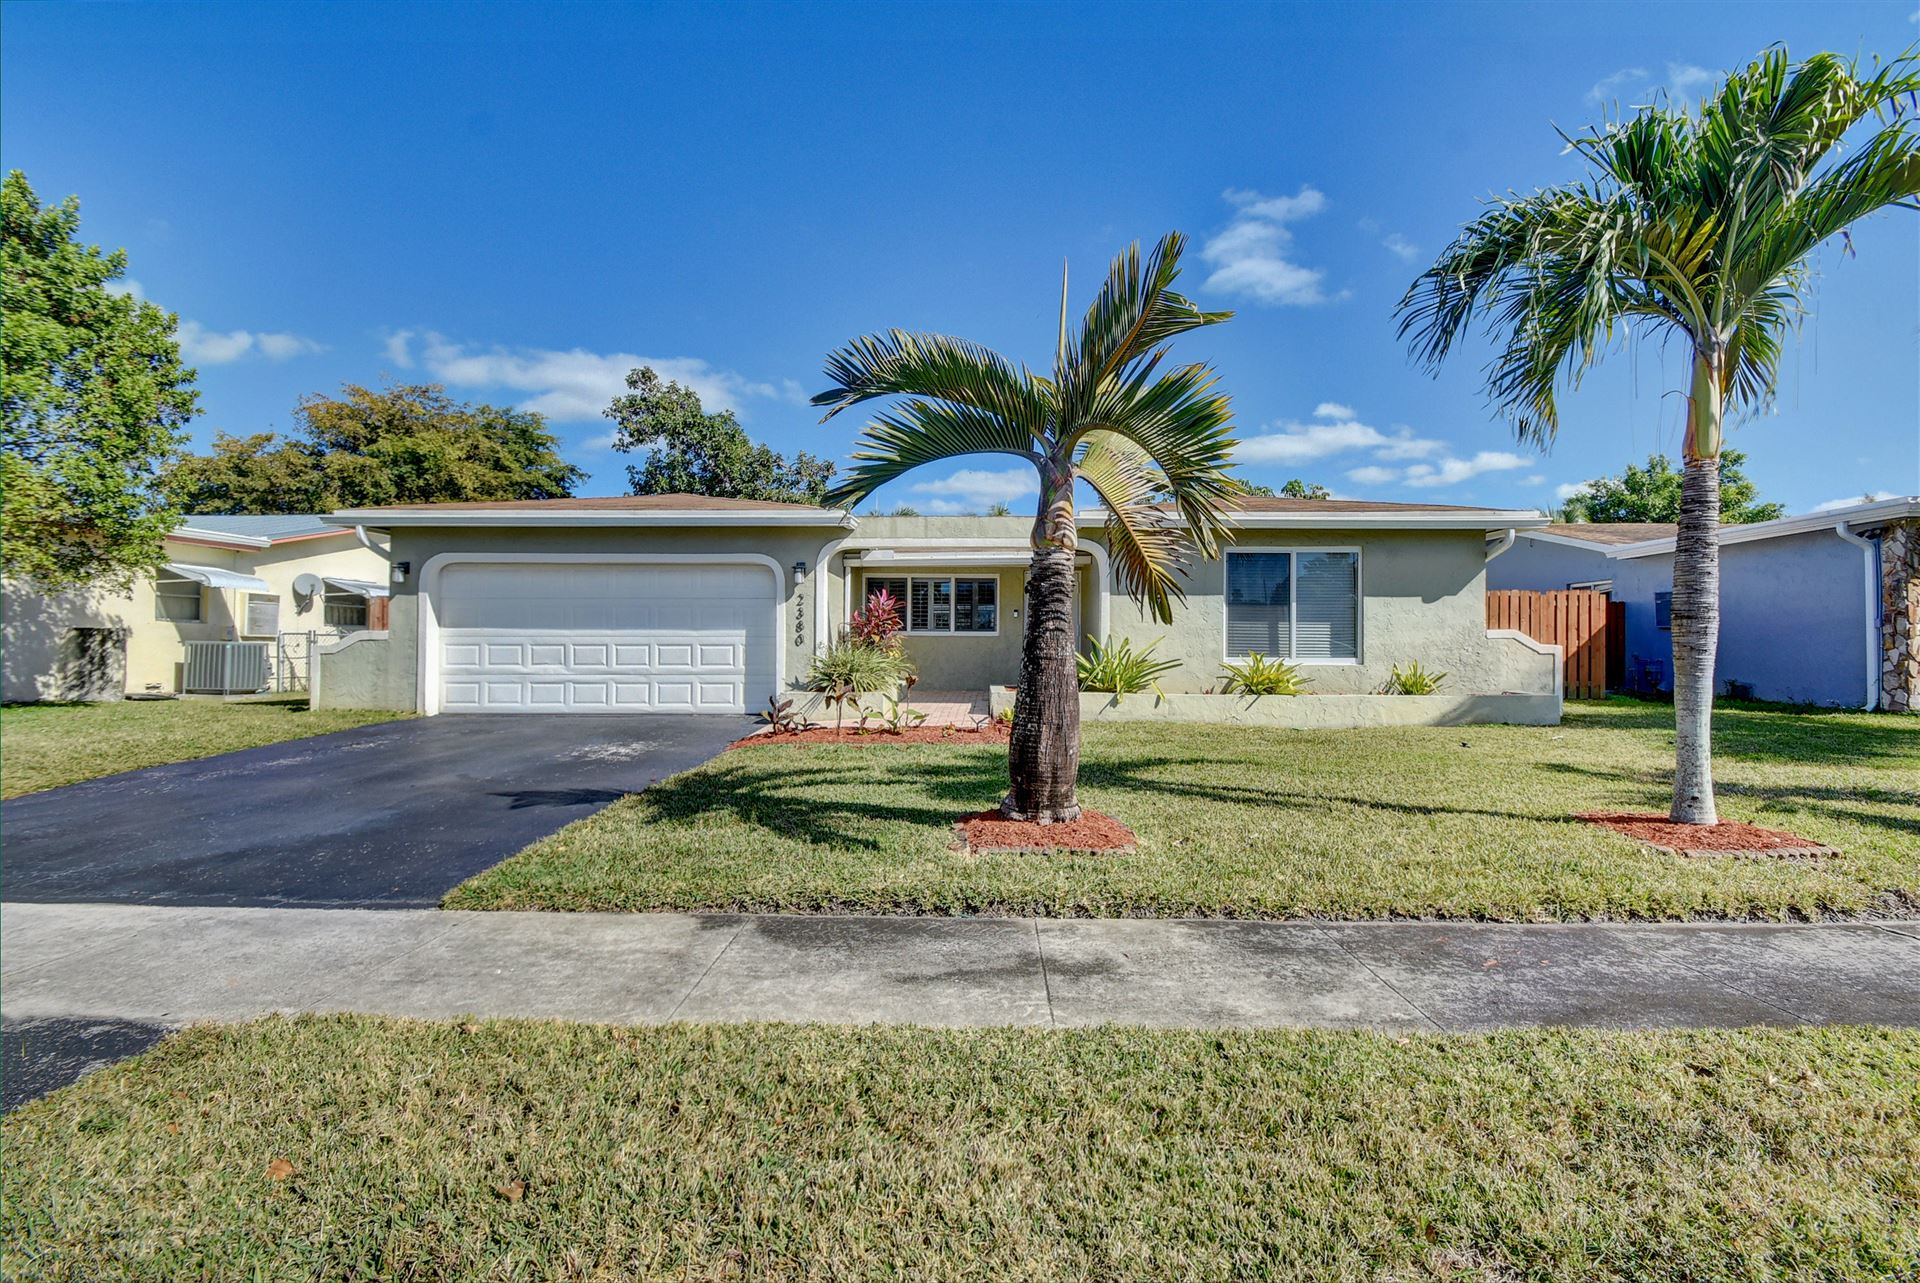 Photo of 2380 NW 94 Way, Sunrise, FL 33322 (MLS # RX-10687909)